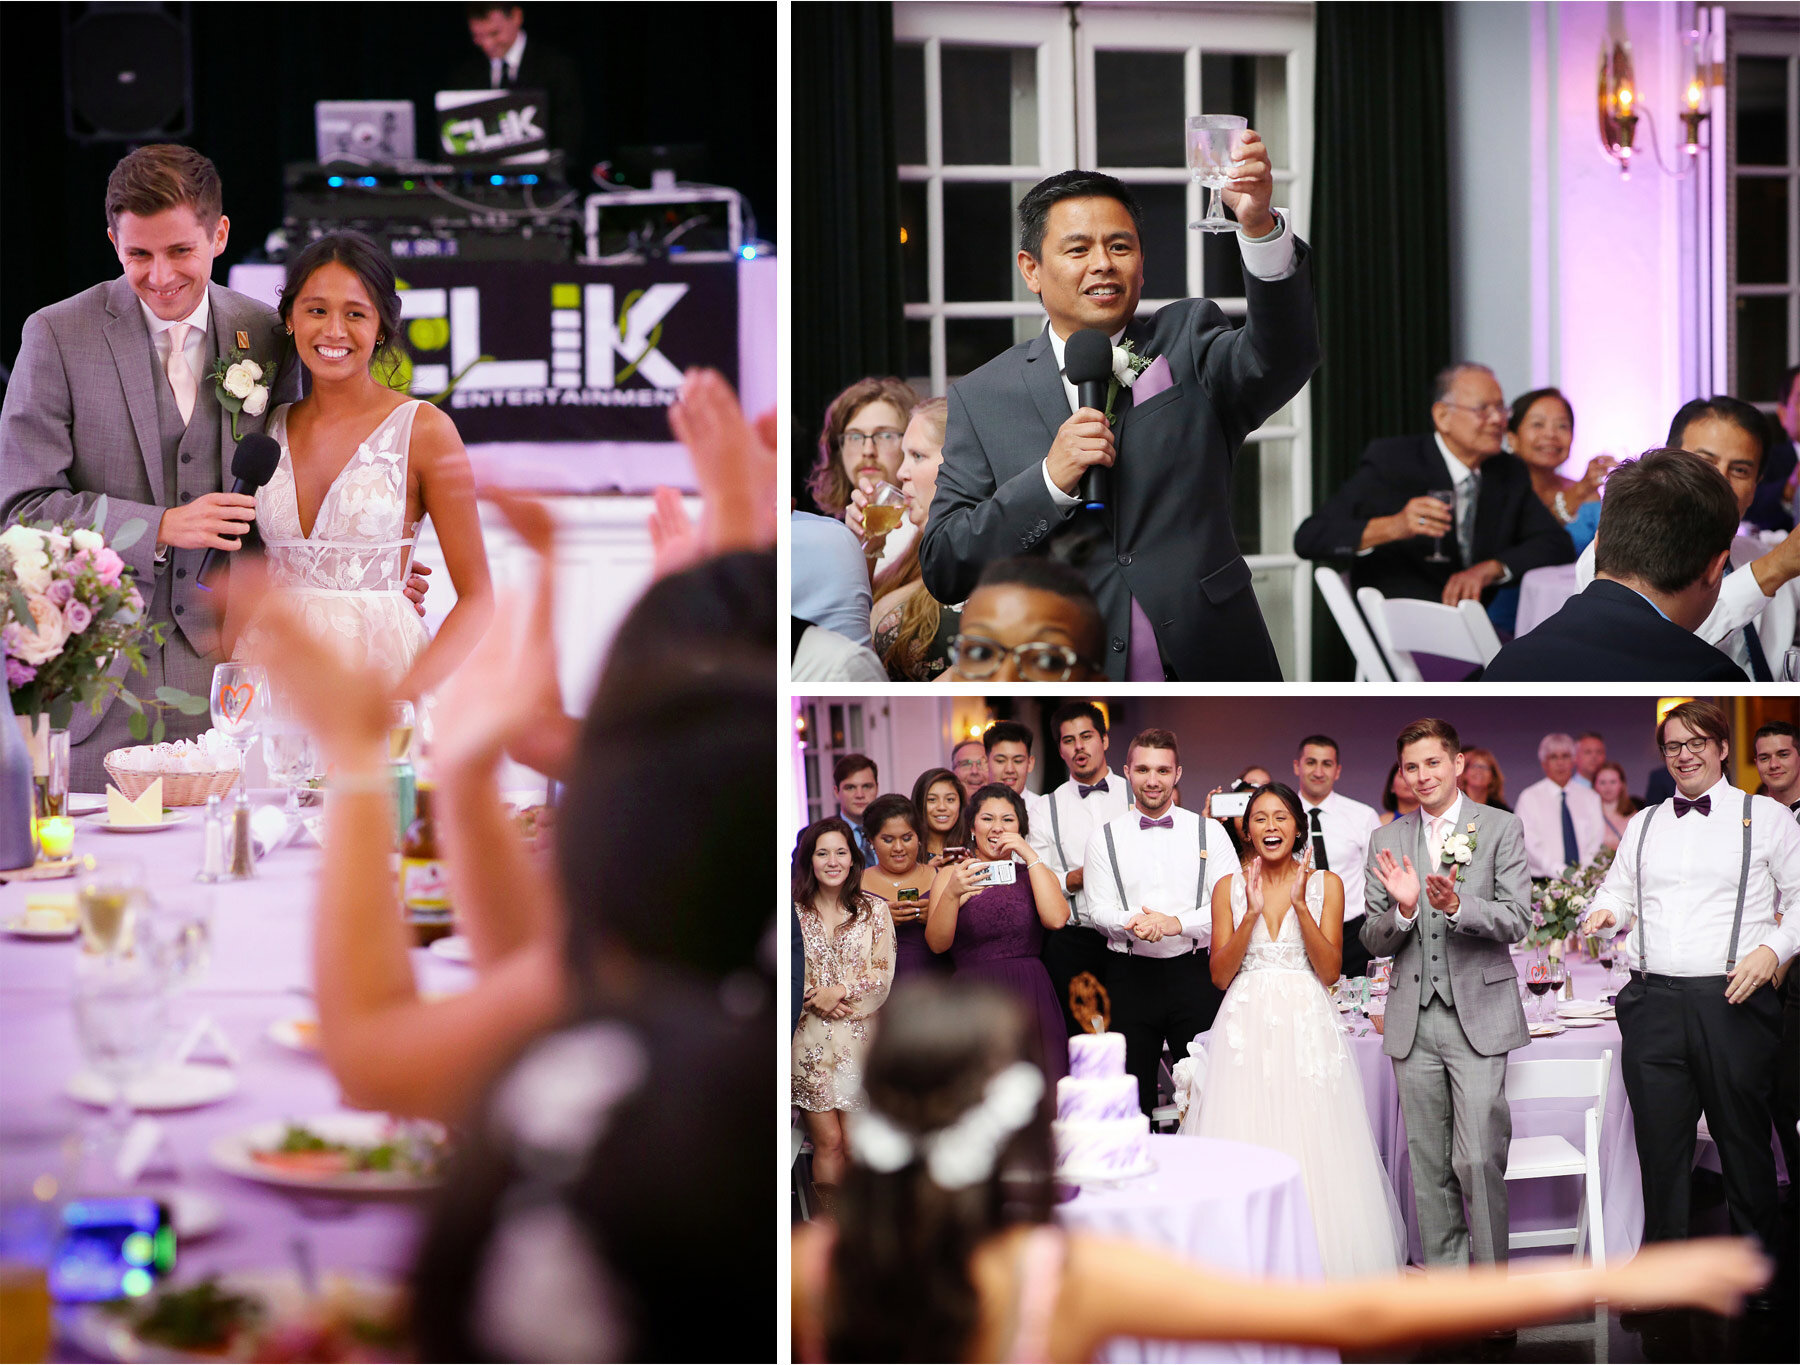 22-Wedding-by-Andrew-Vick-Photography-Chicago-Illinois-Reception-Womans-Club-of-Evanston-Toasts-Ashley-and-Nicholas.jpg